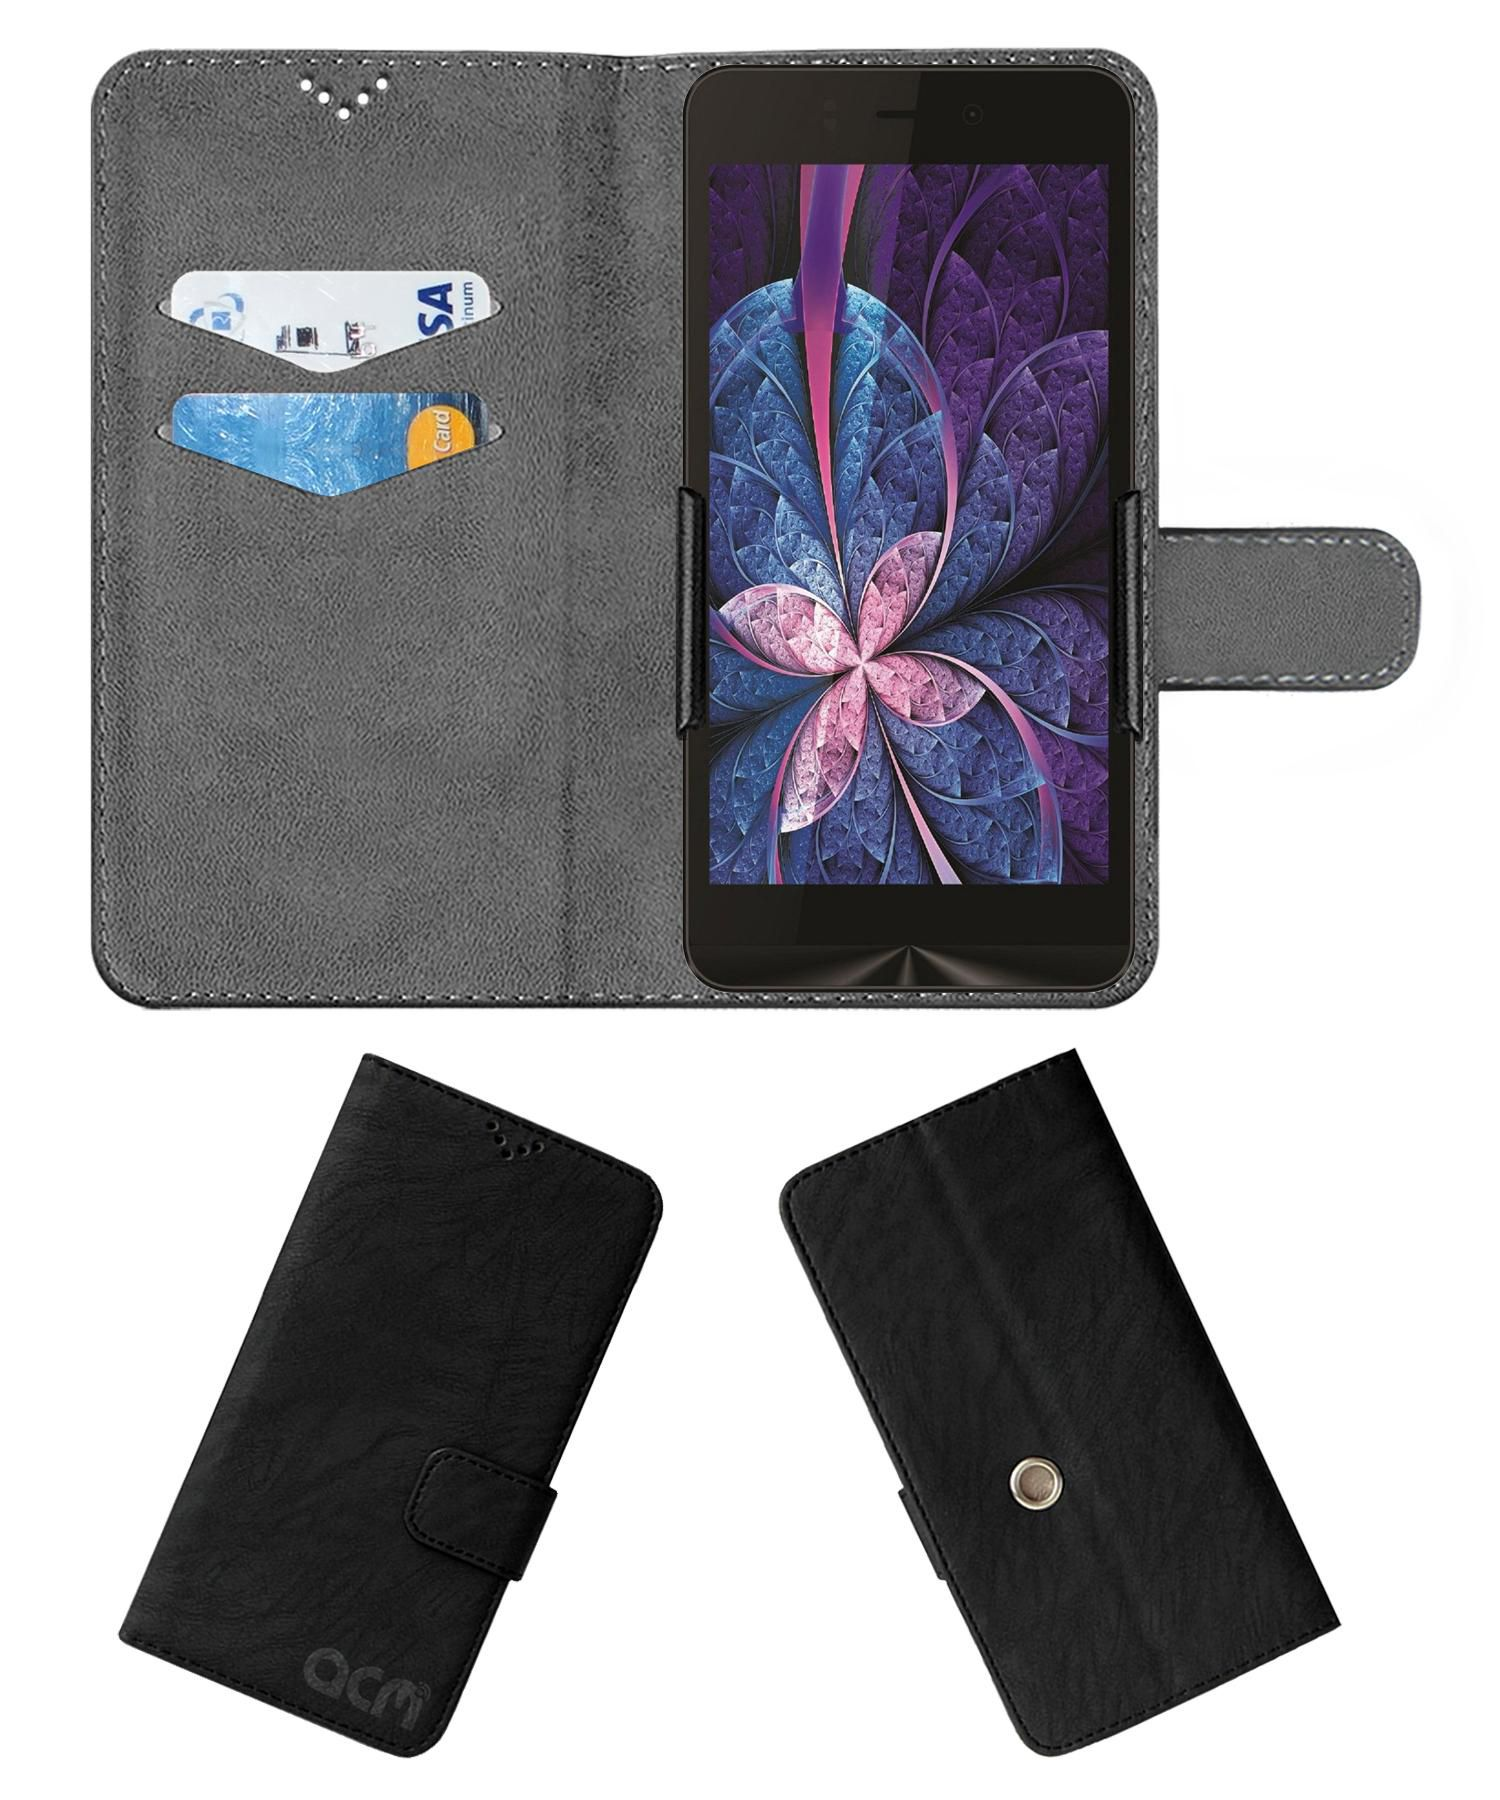 Intex Aqua Ring Flip Cover by ACM - Black Clip holder to hold your mobile securely